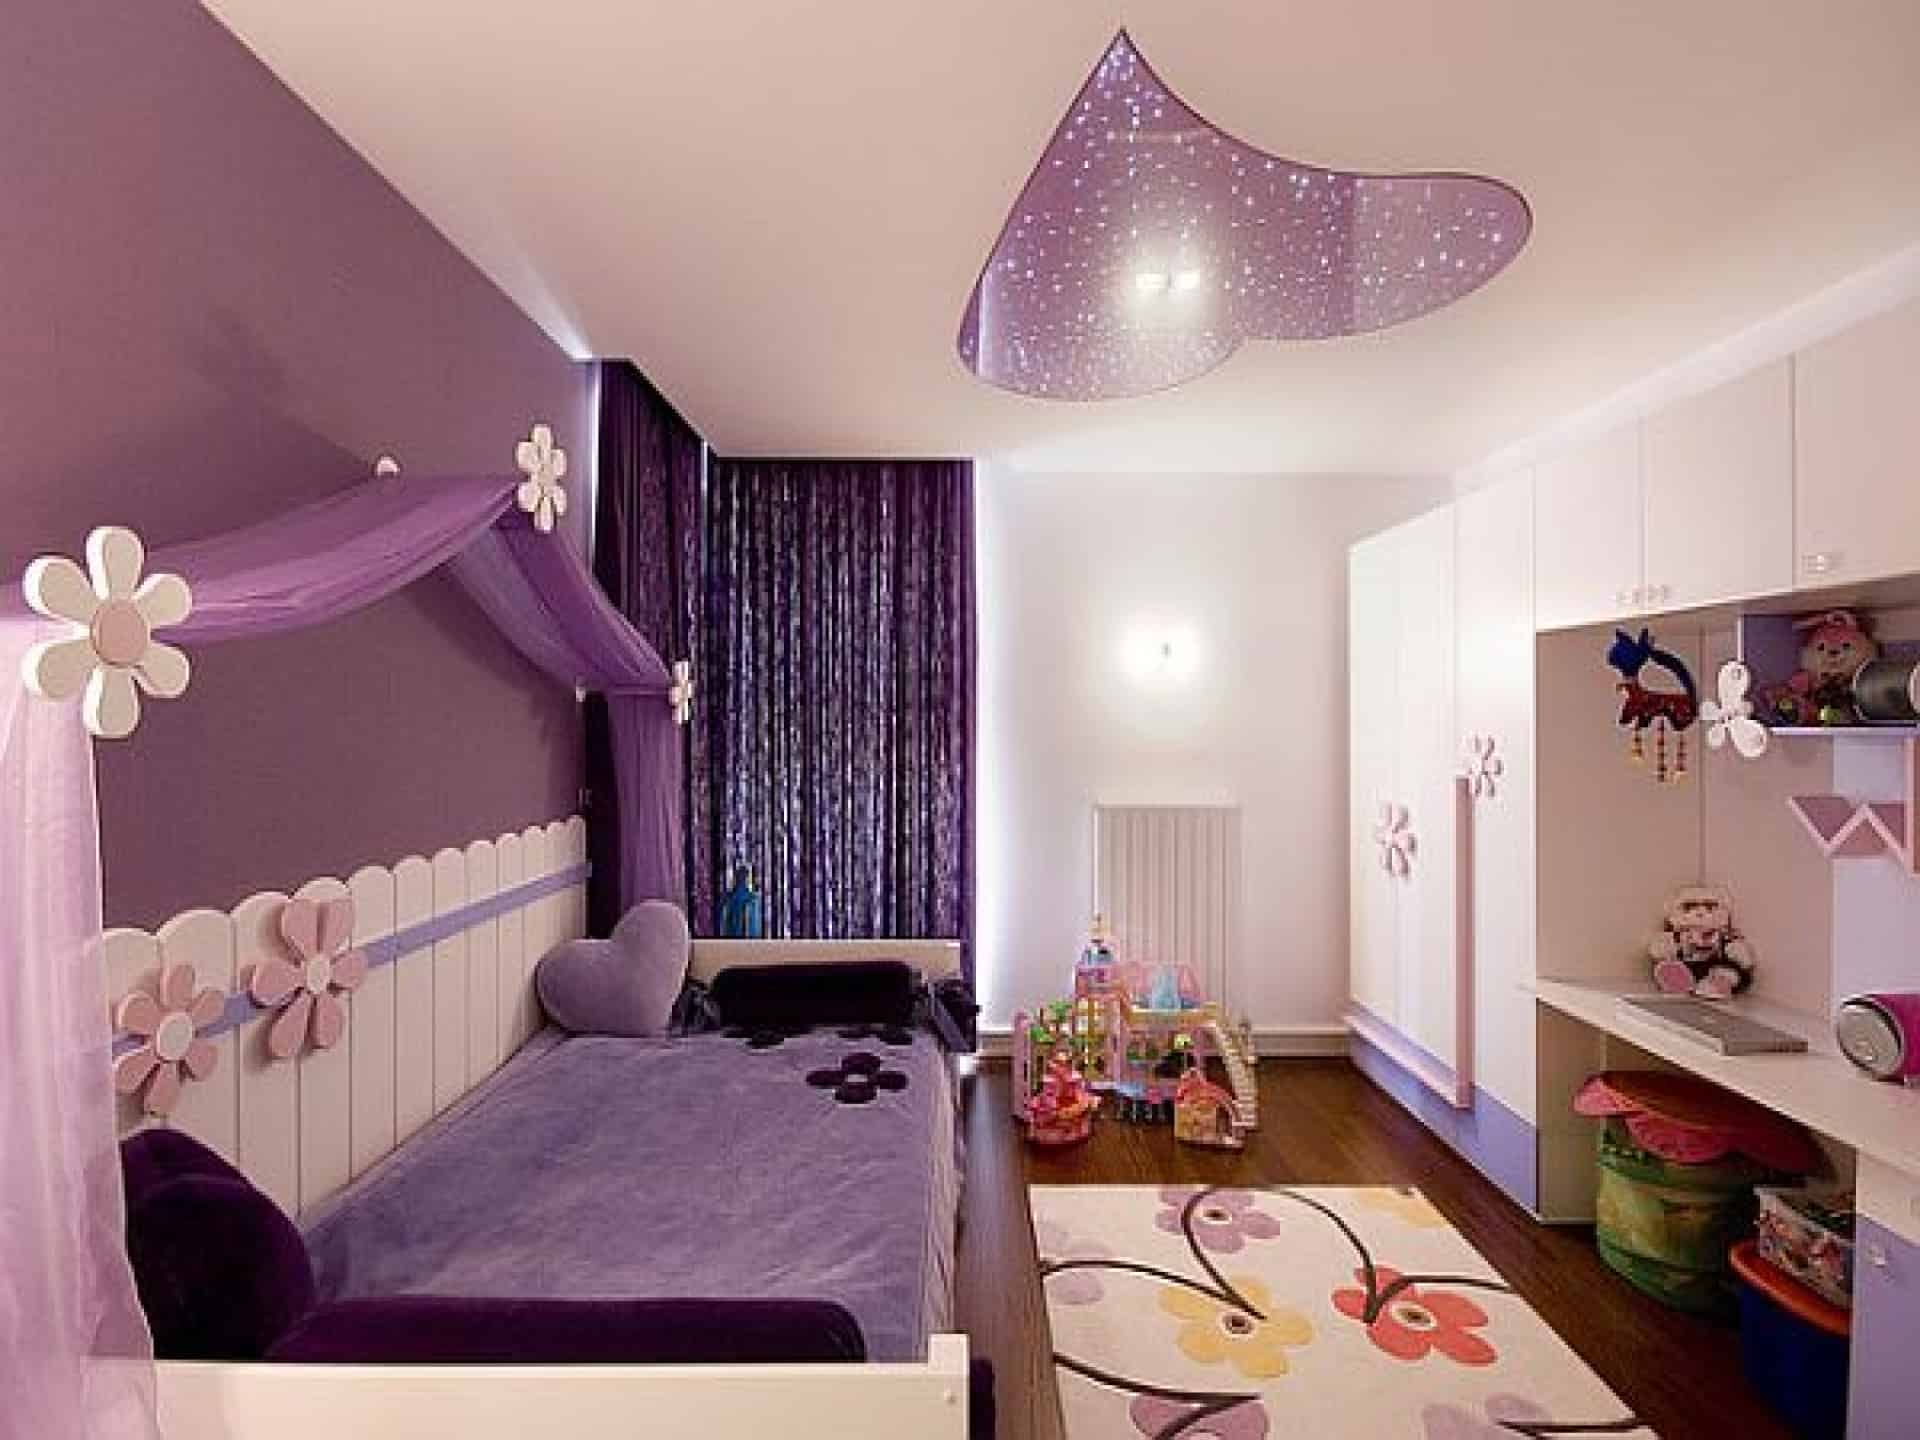 Home decor trends 2017 purple teen room for A girl room decoration